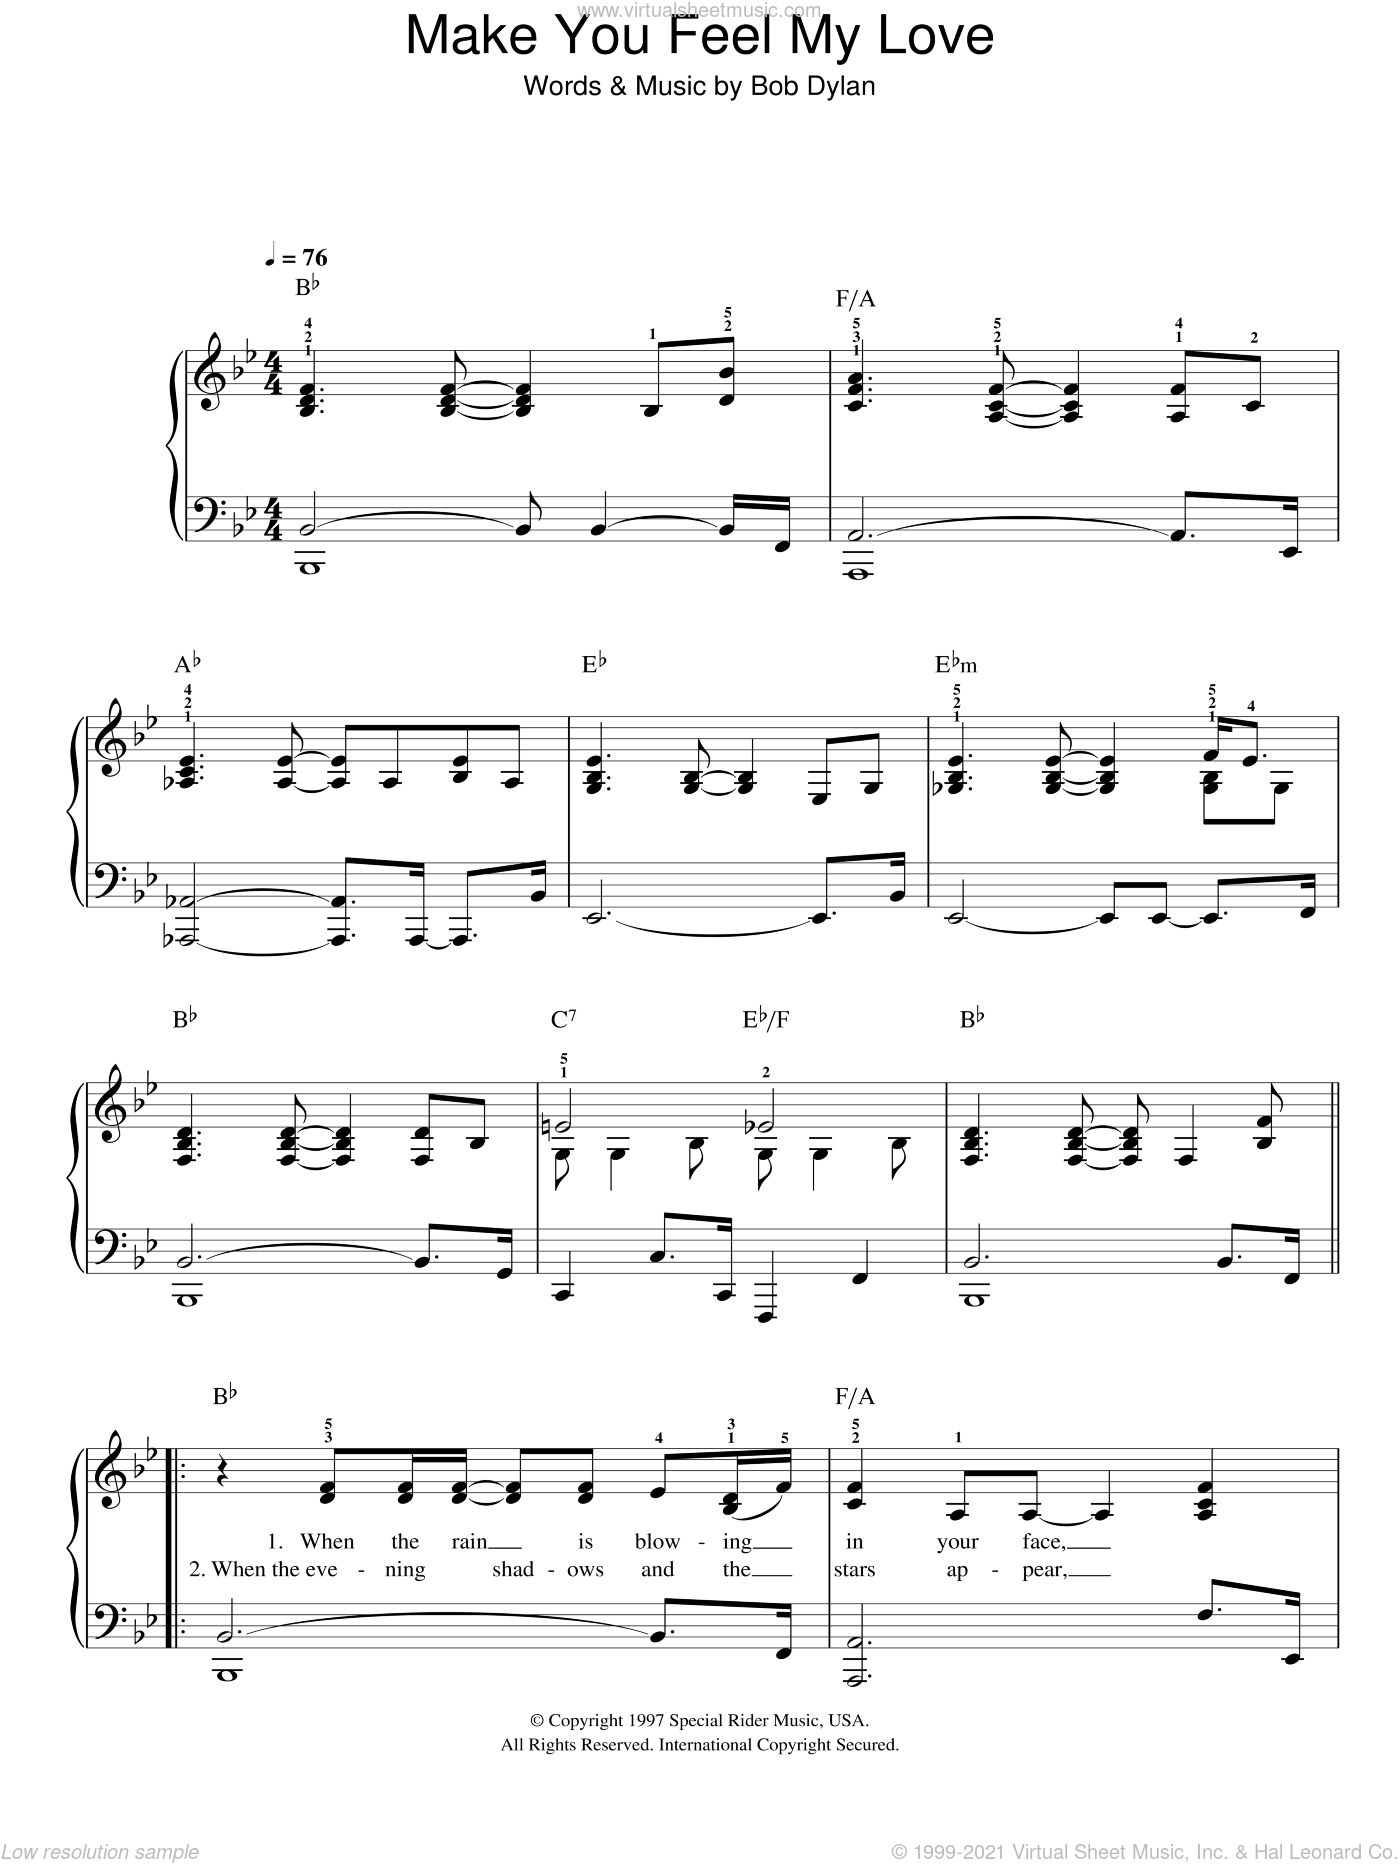 Make You Feel My Love sheet music for piano solo by Adele and Bob Dylan, easy skill level